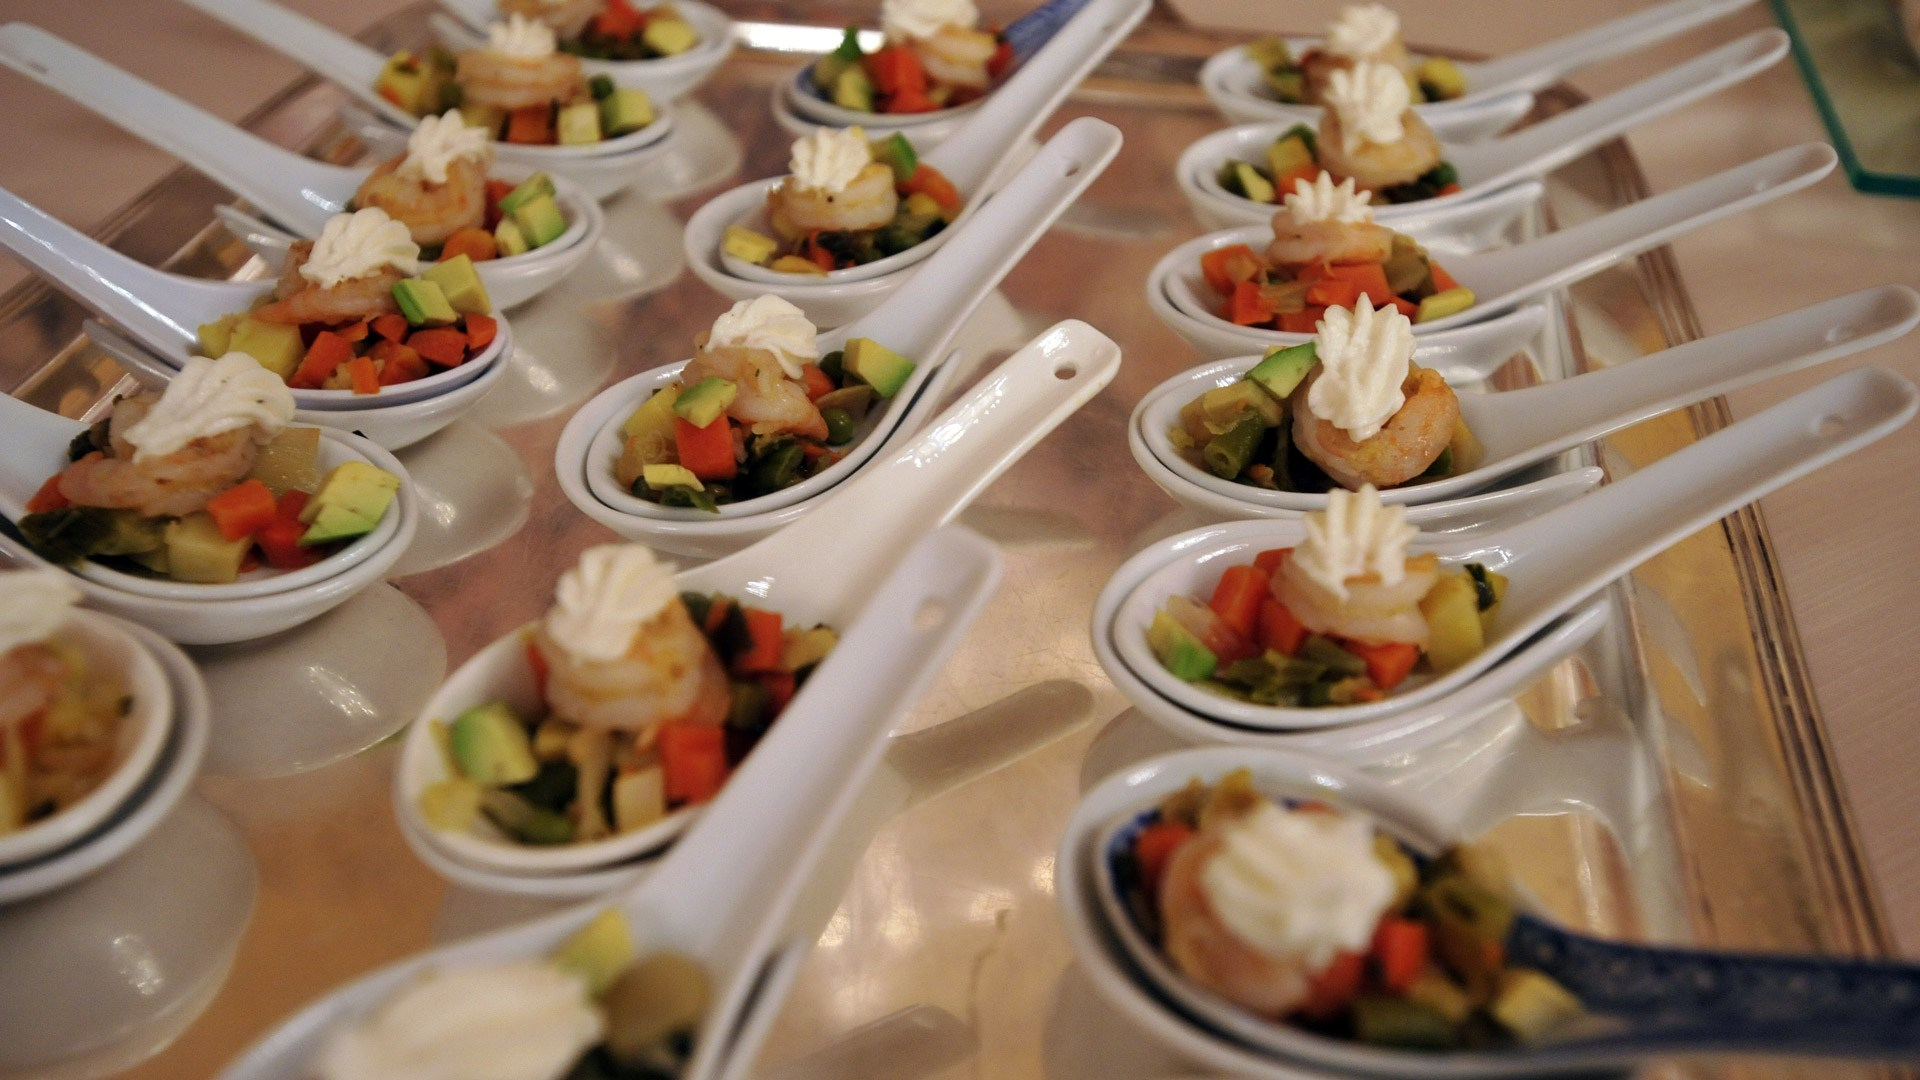 catering e banqueting salerno - photo#1